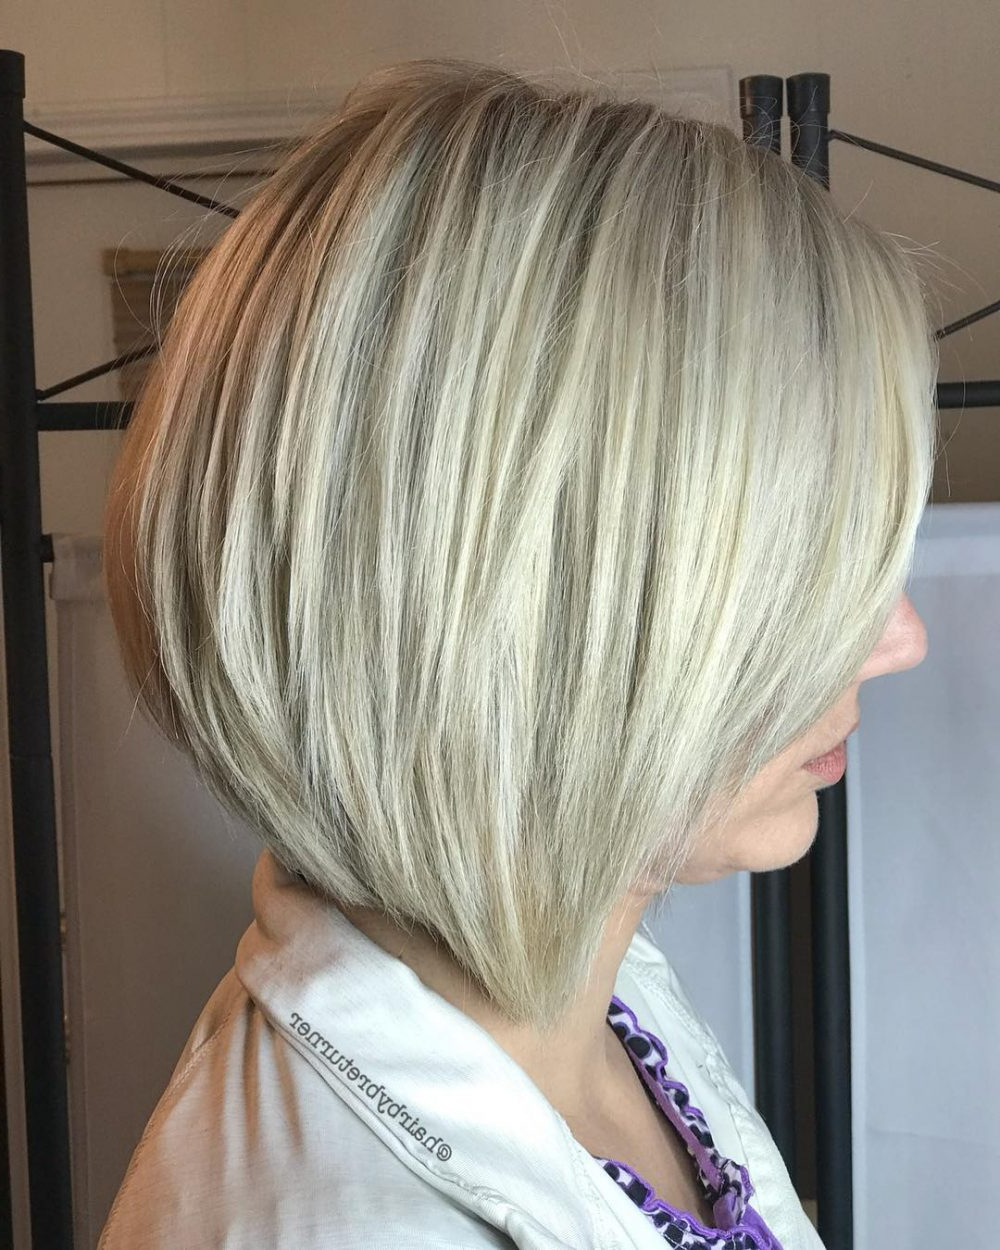 42 Sexiest Short Hairstyles For Women Over 40 In 2018 In Short Hairstyle For Over  (View 7 of 25)